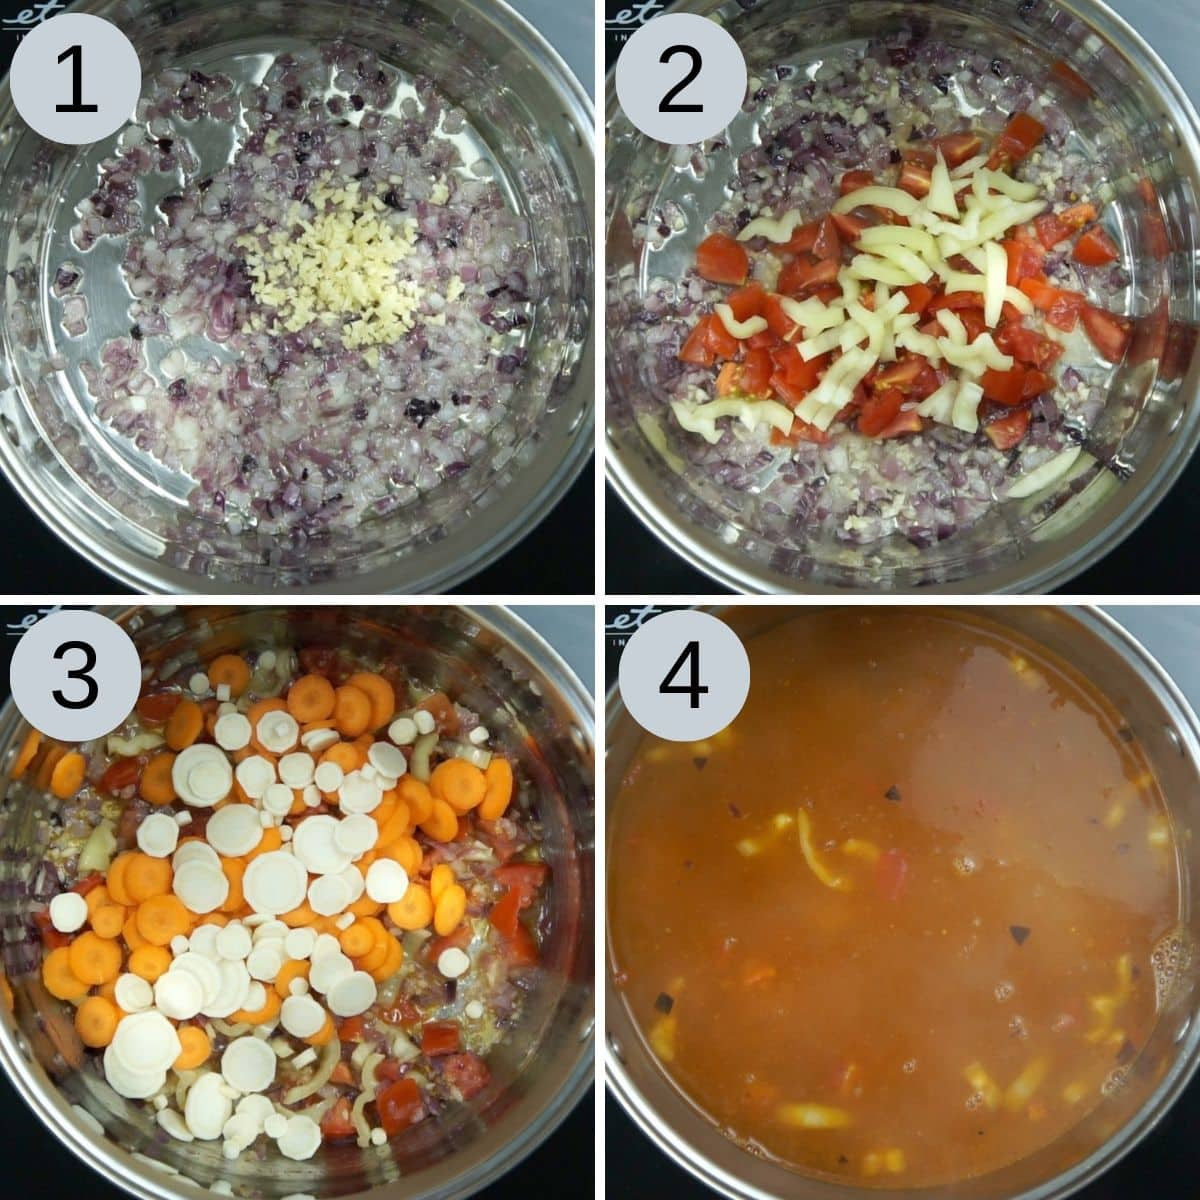 Collage of 4 steps of how to make cabbage soup (adding onion, garlic, tomato, yellow paprika, carrot, parsnip and veggie broth)